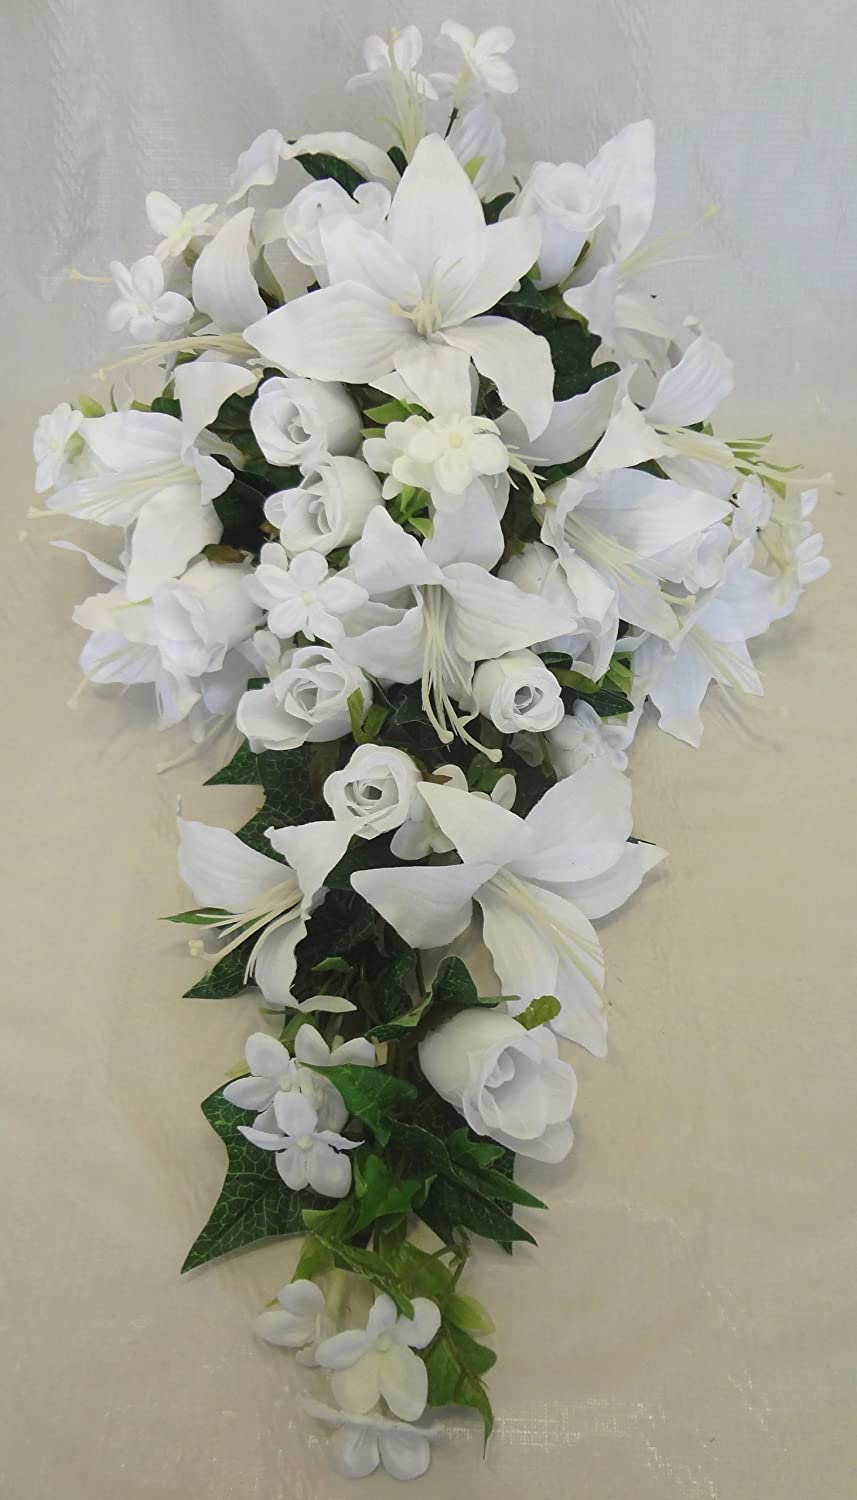 Amazoncom V Max Floral Decor Rose And Lily Wedding Bouquets White